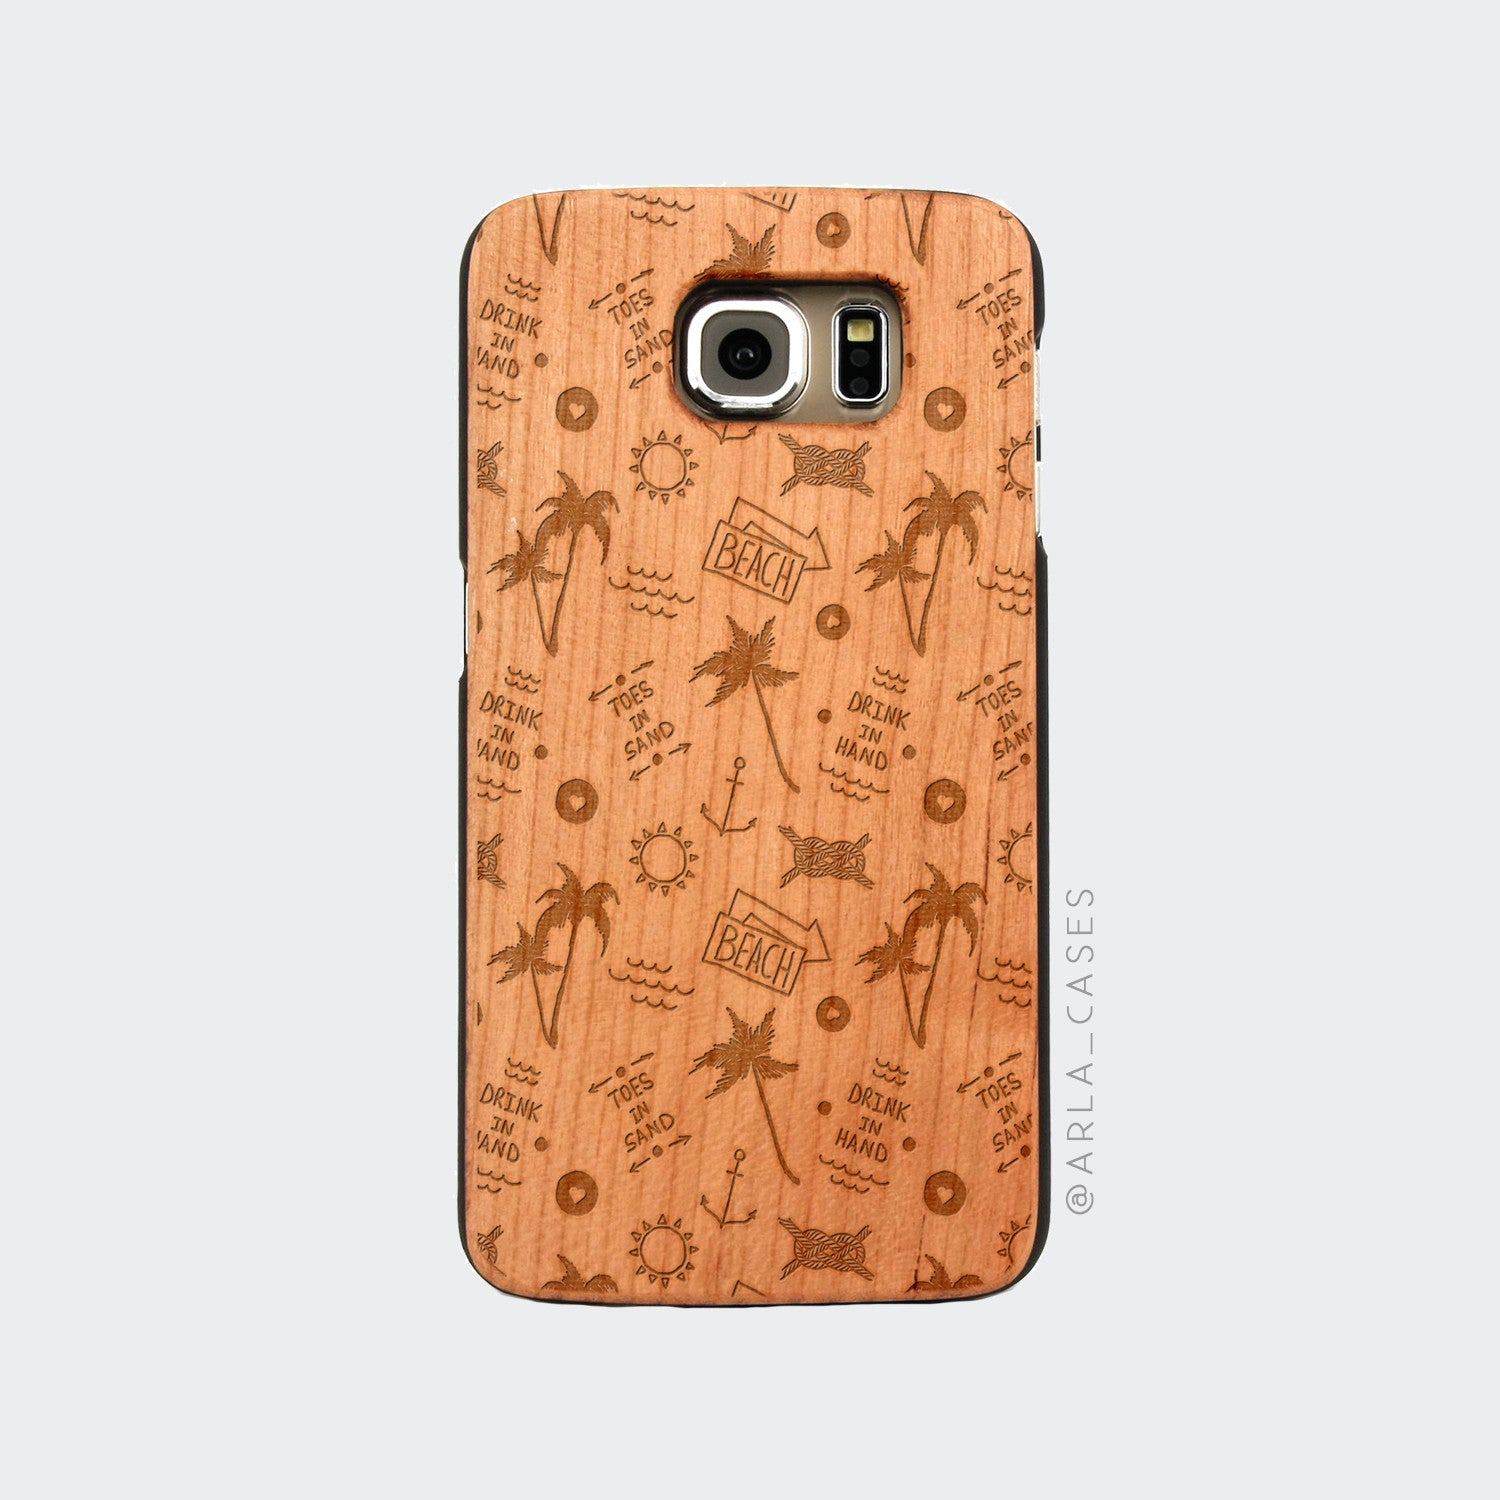 Summer Things Engraved on Wood Galaxy Case